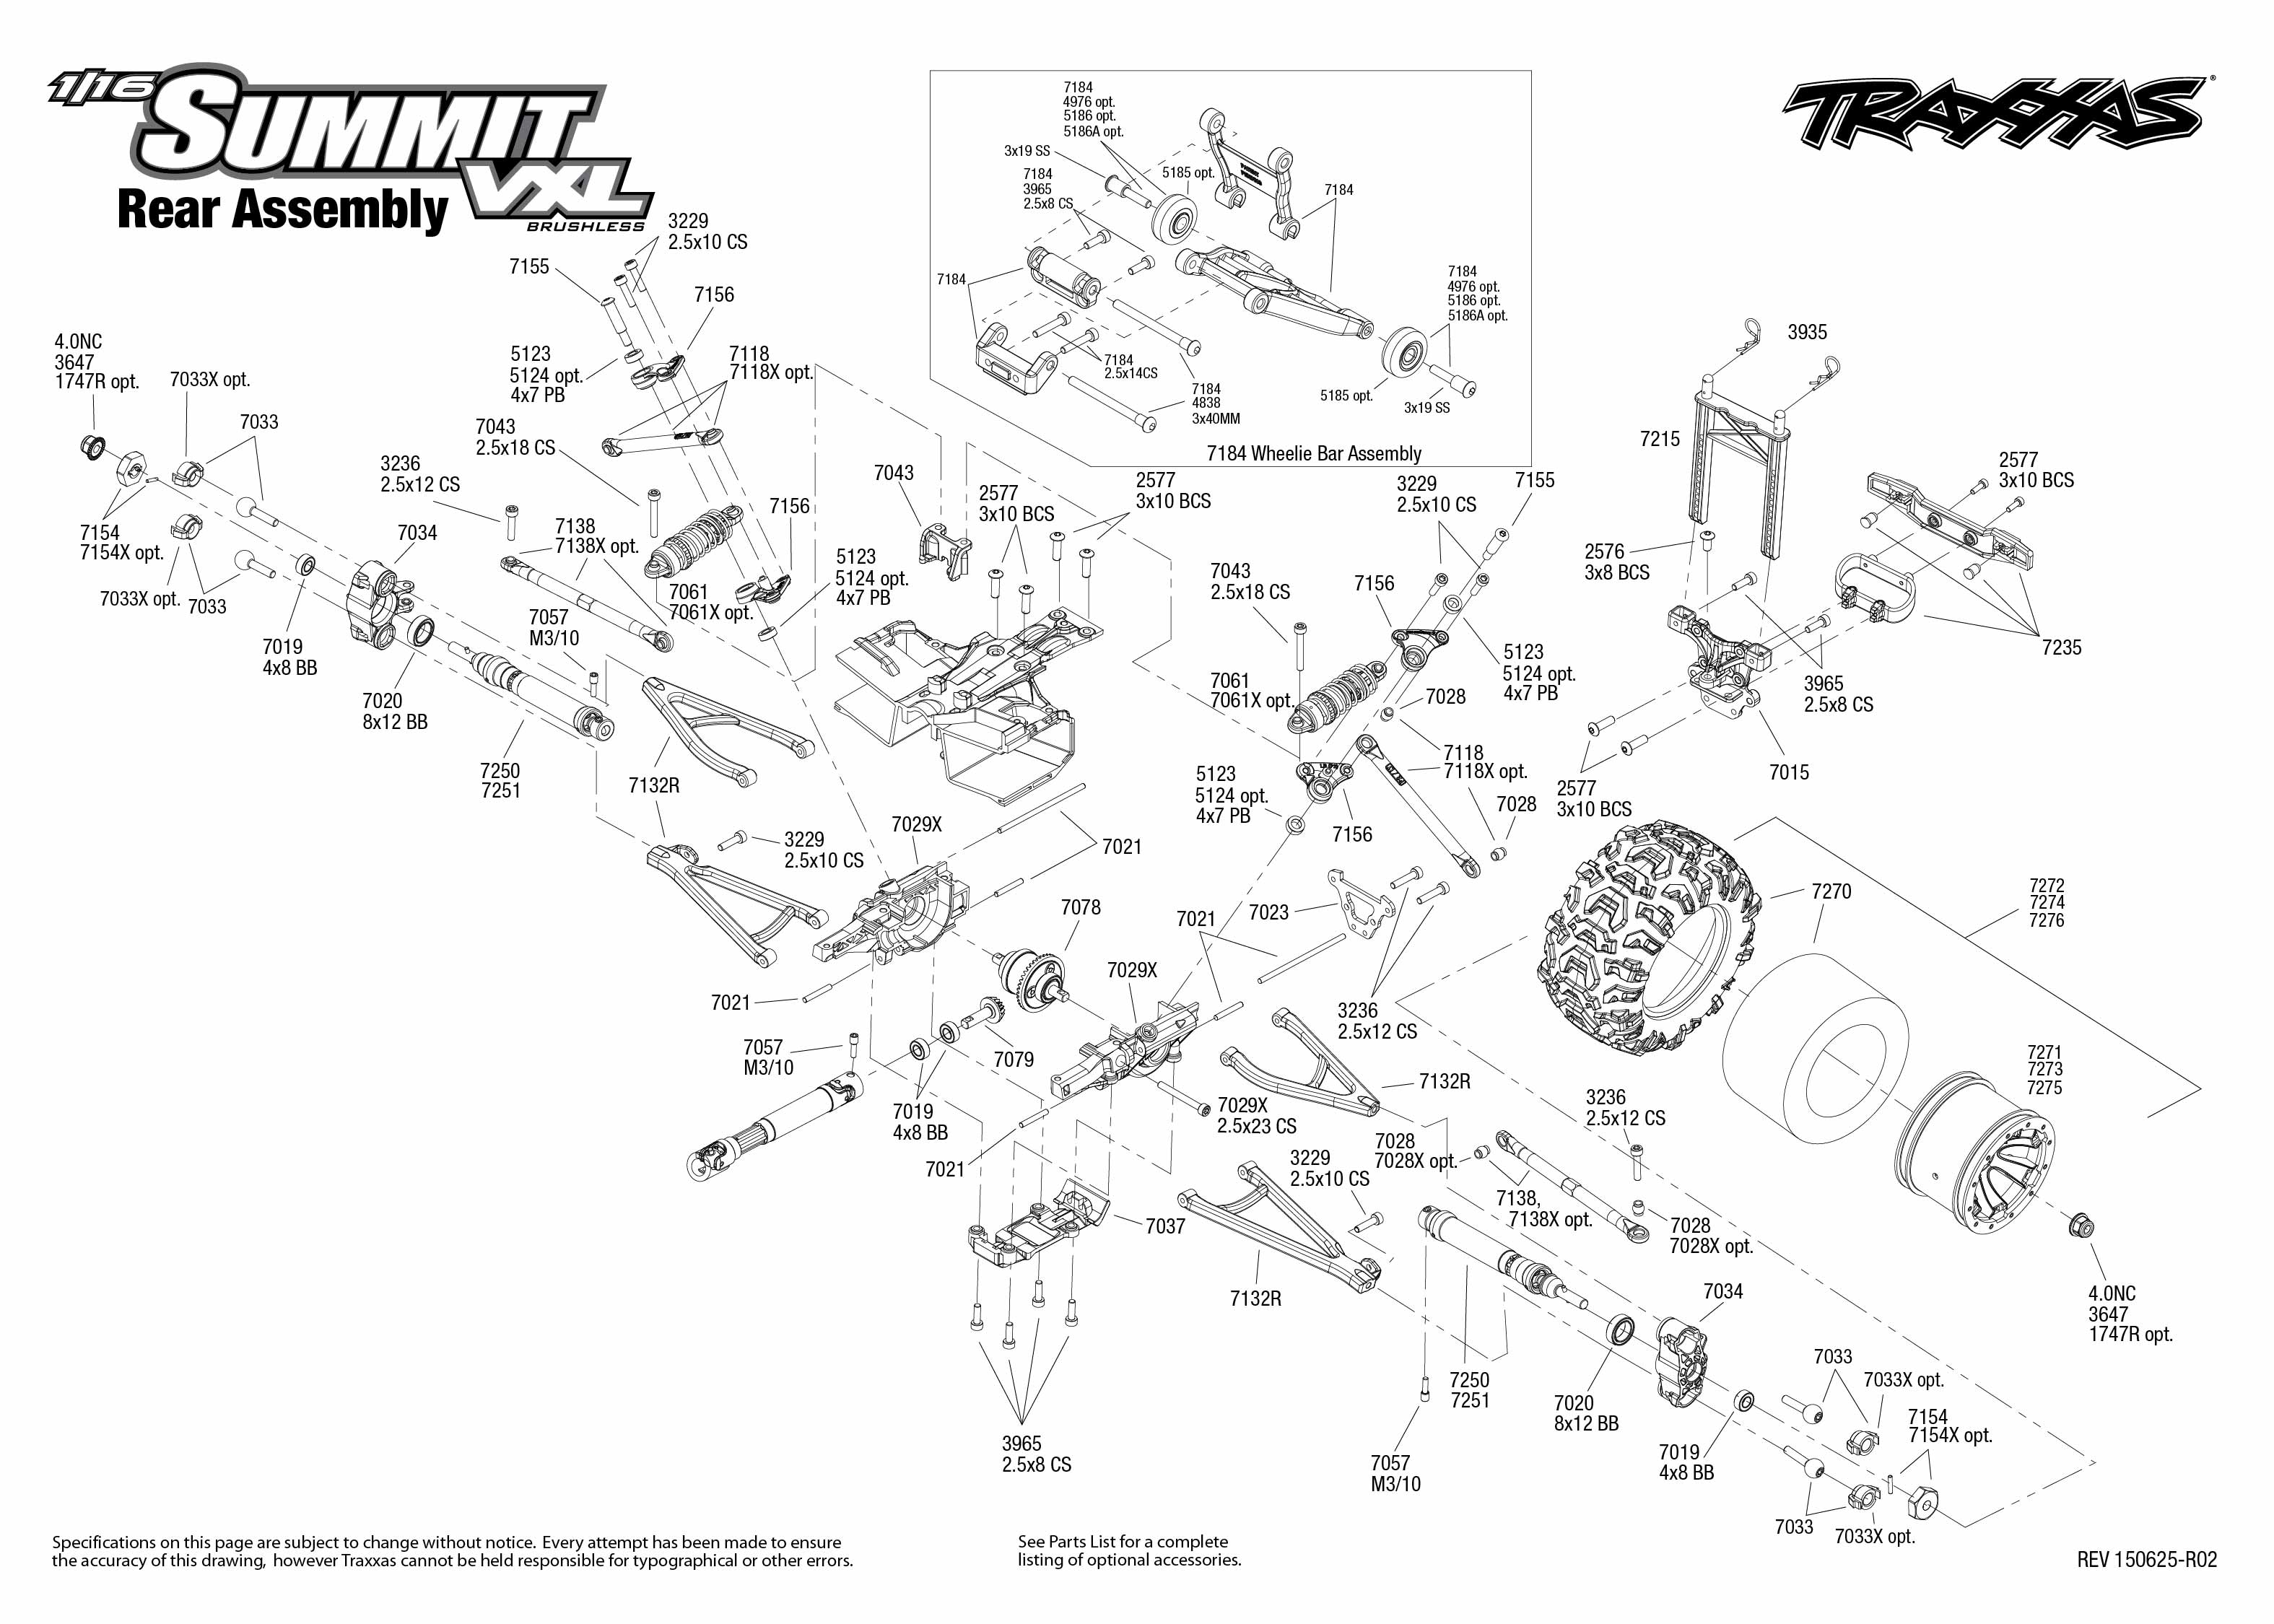 1/16 Summit VXL (72074-1) Rear Assembly Exploded View